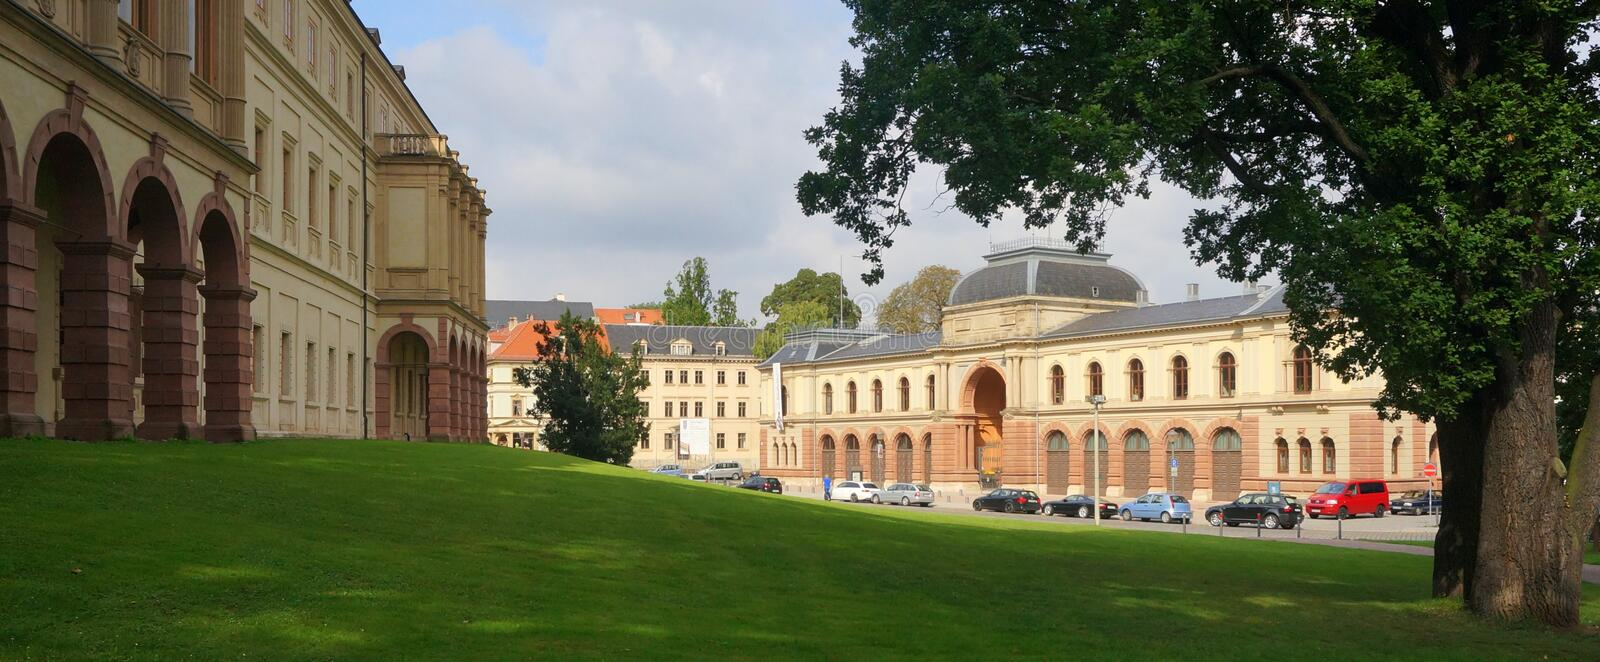 Weimar Archives. The Weimar Archives are located across from the Weimar City Palace (left). The city of Weimar in the federal state of Thuringia, Germany, is stock images